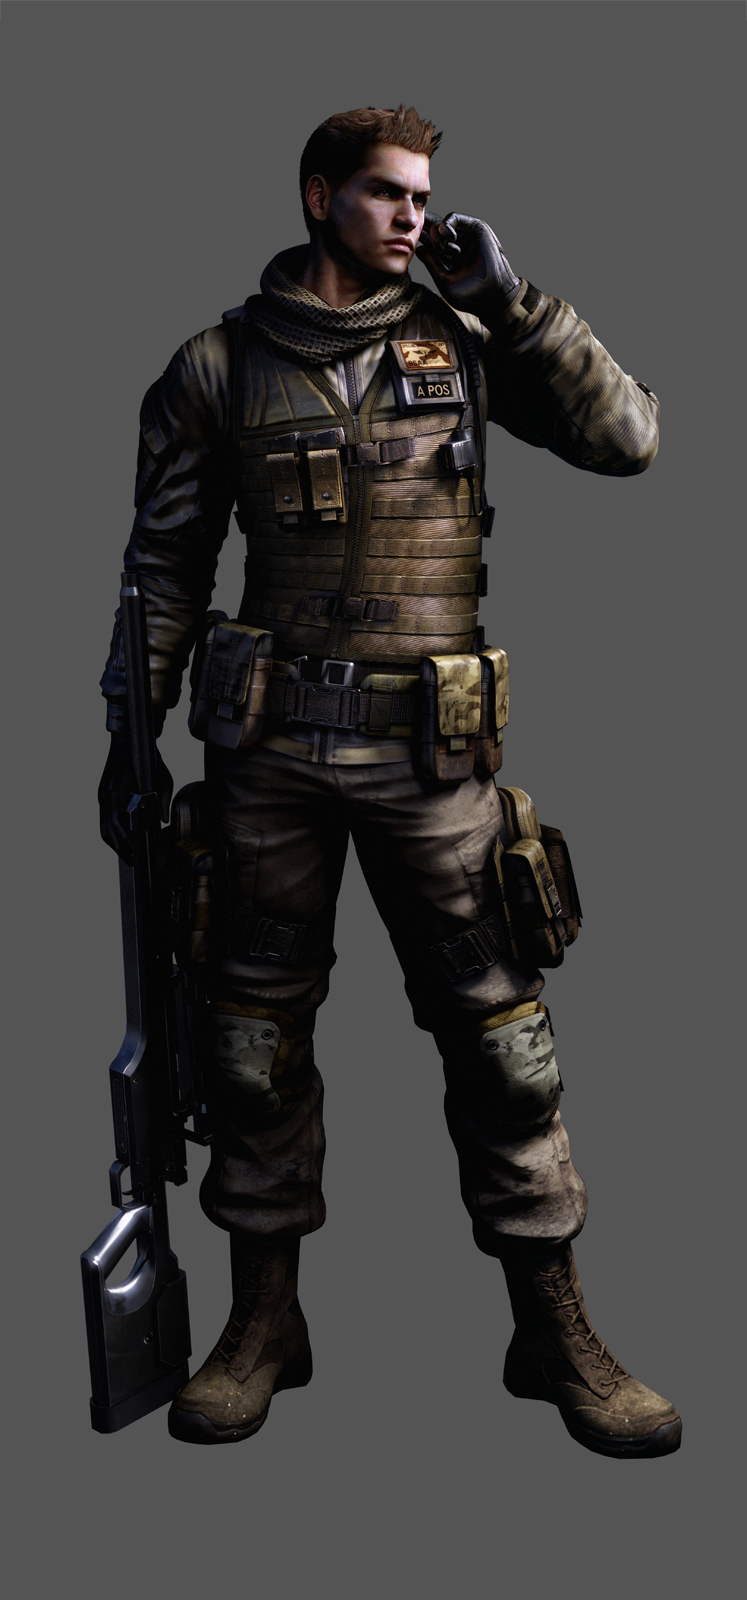 Piers Nivans | Resident Evil Wiki | FANDOM powered by Wikia